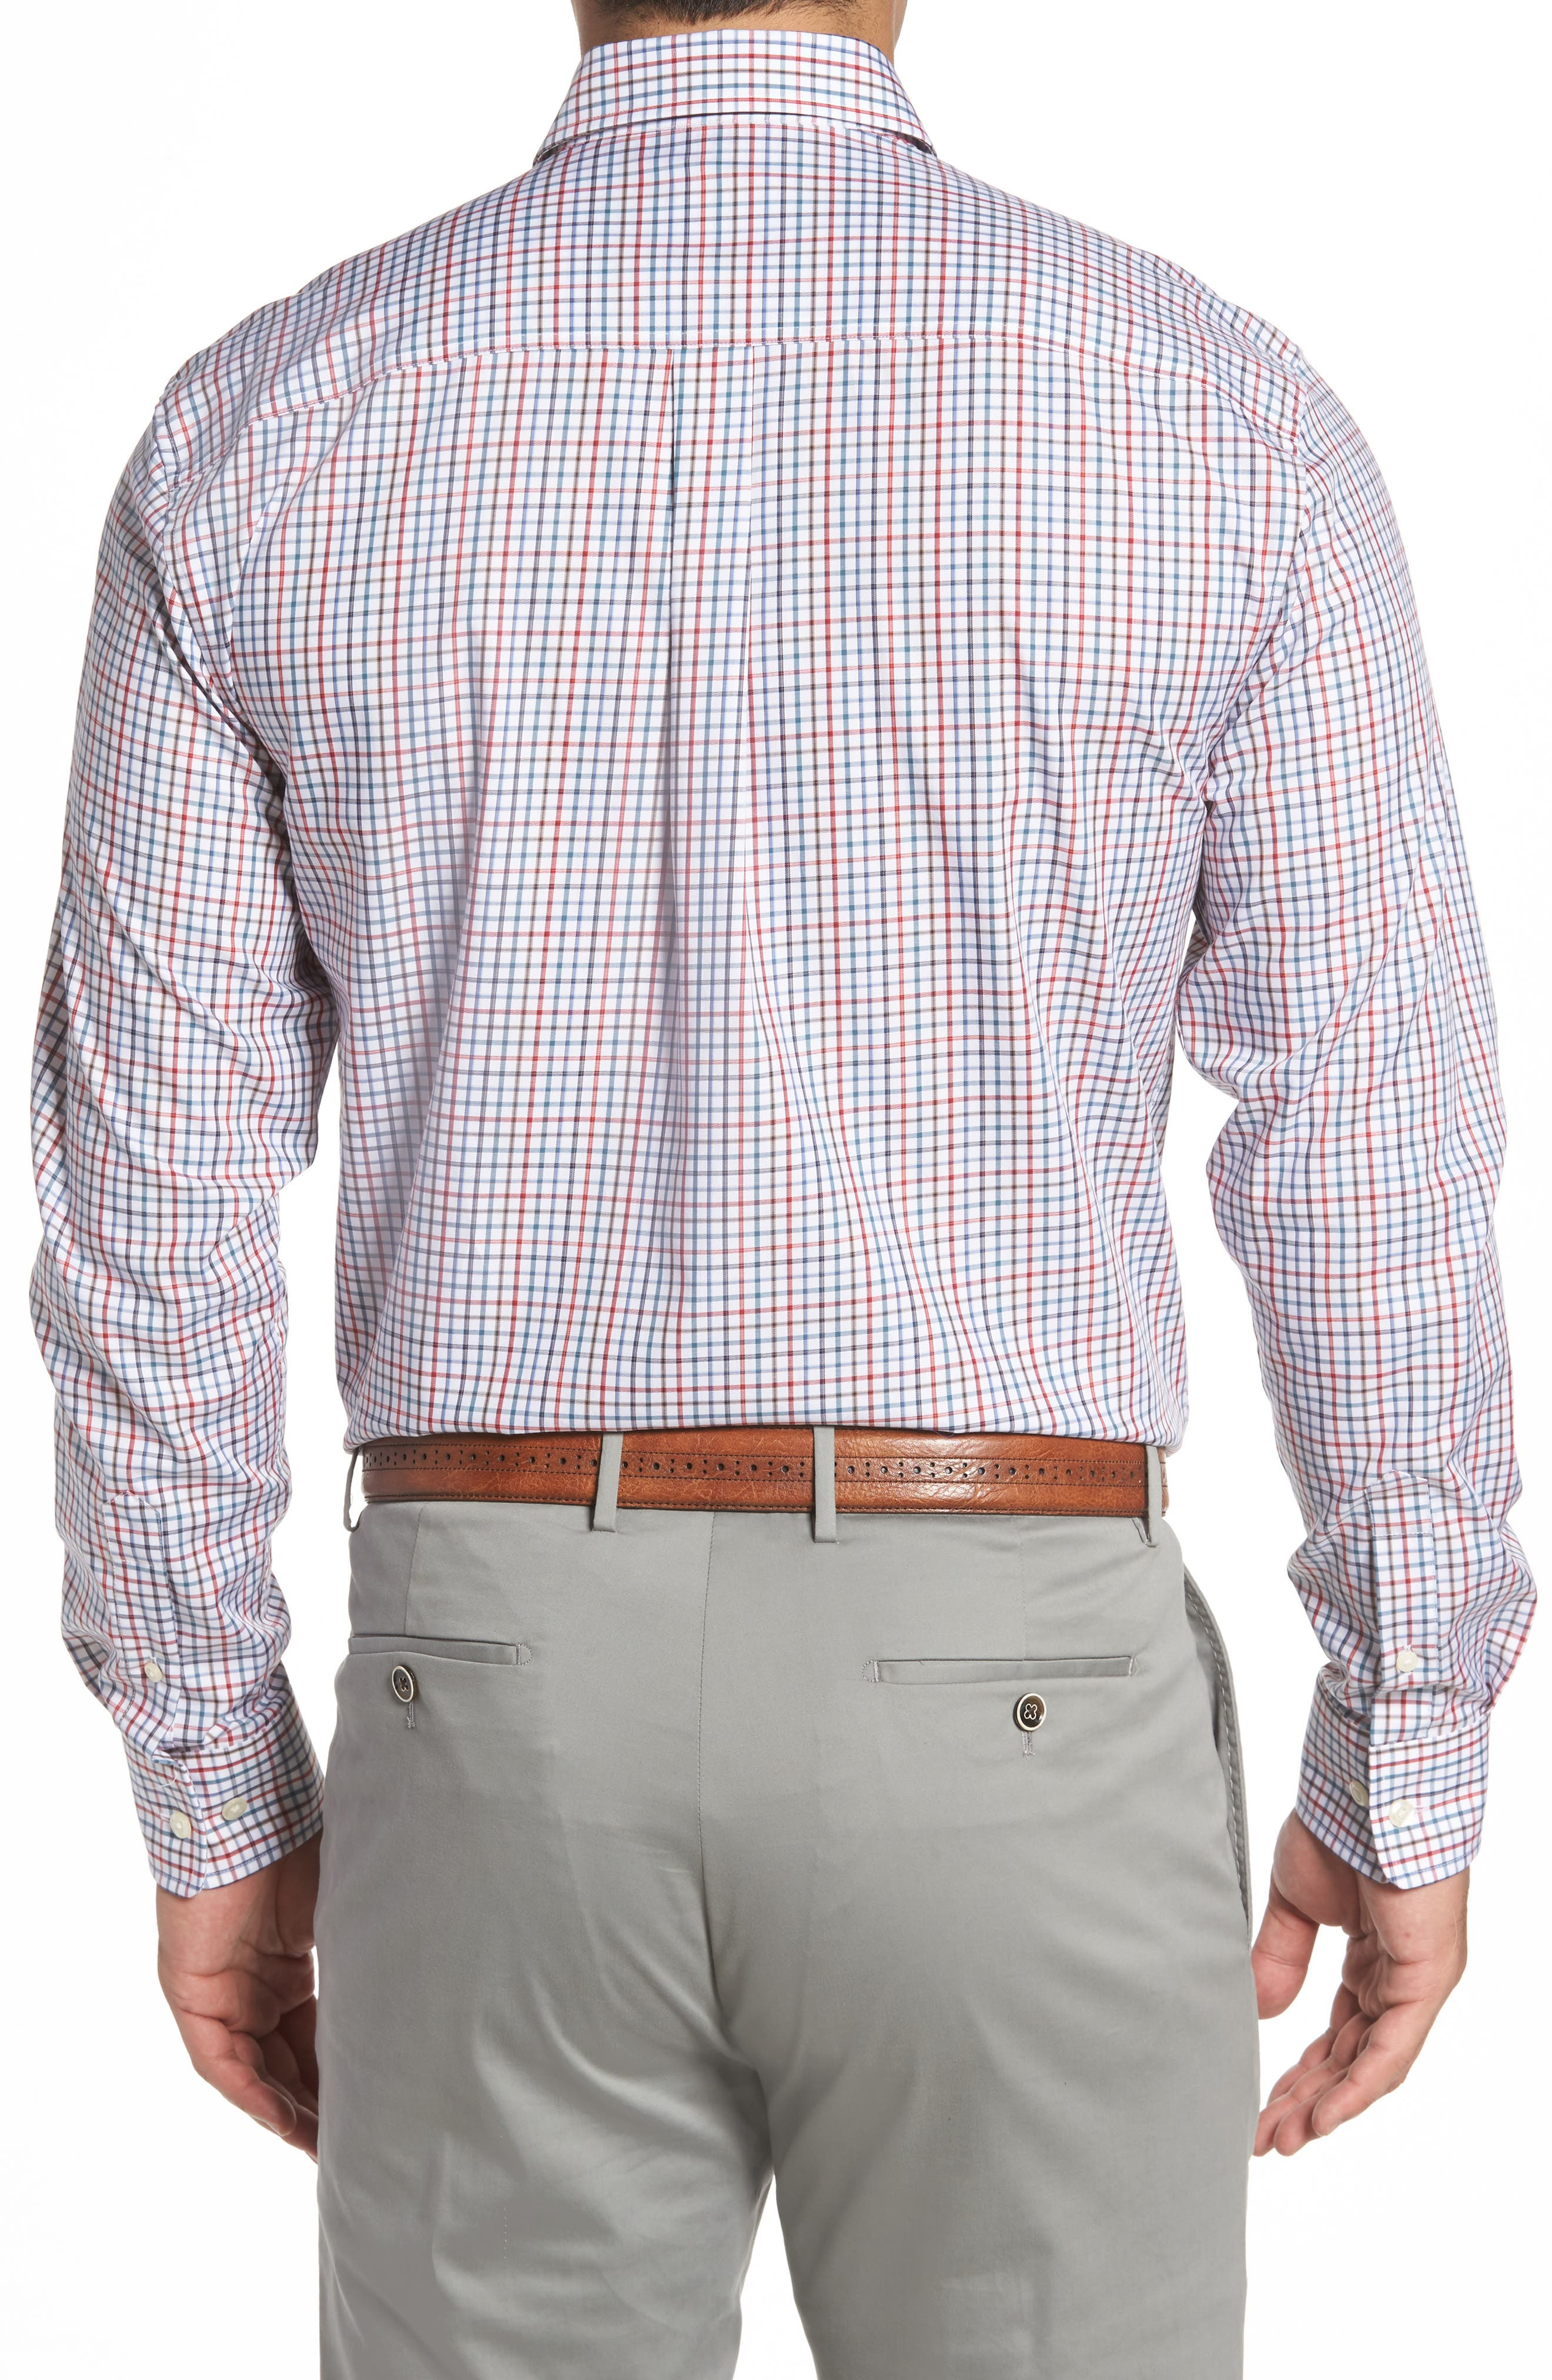 Snyder Classic Fit Check Sport Shirt,                             Alternate thumbnail 2, color,                             Phoenix